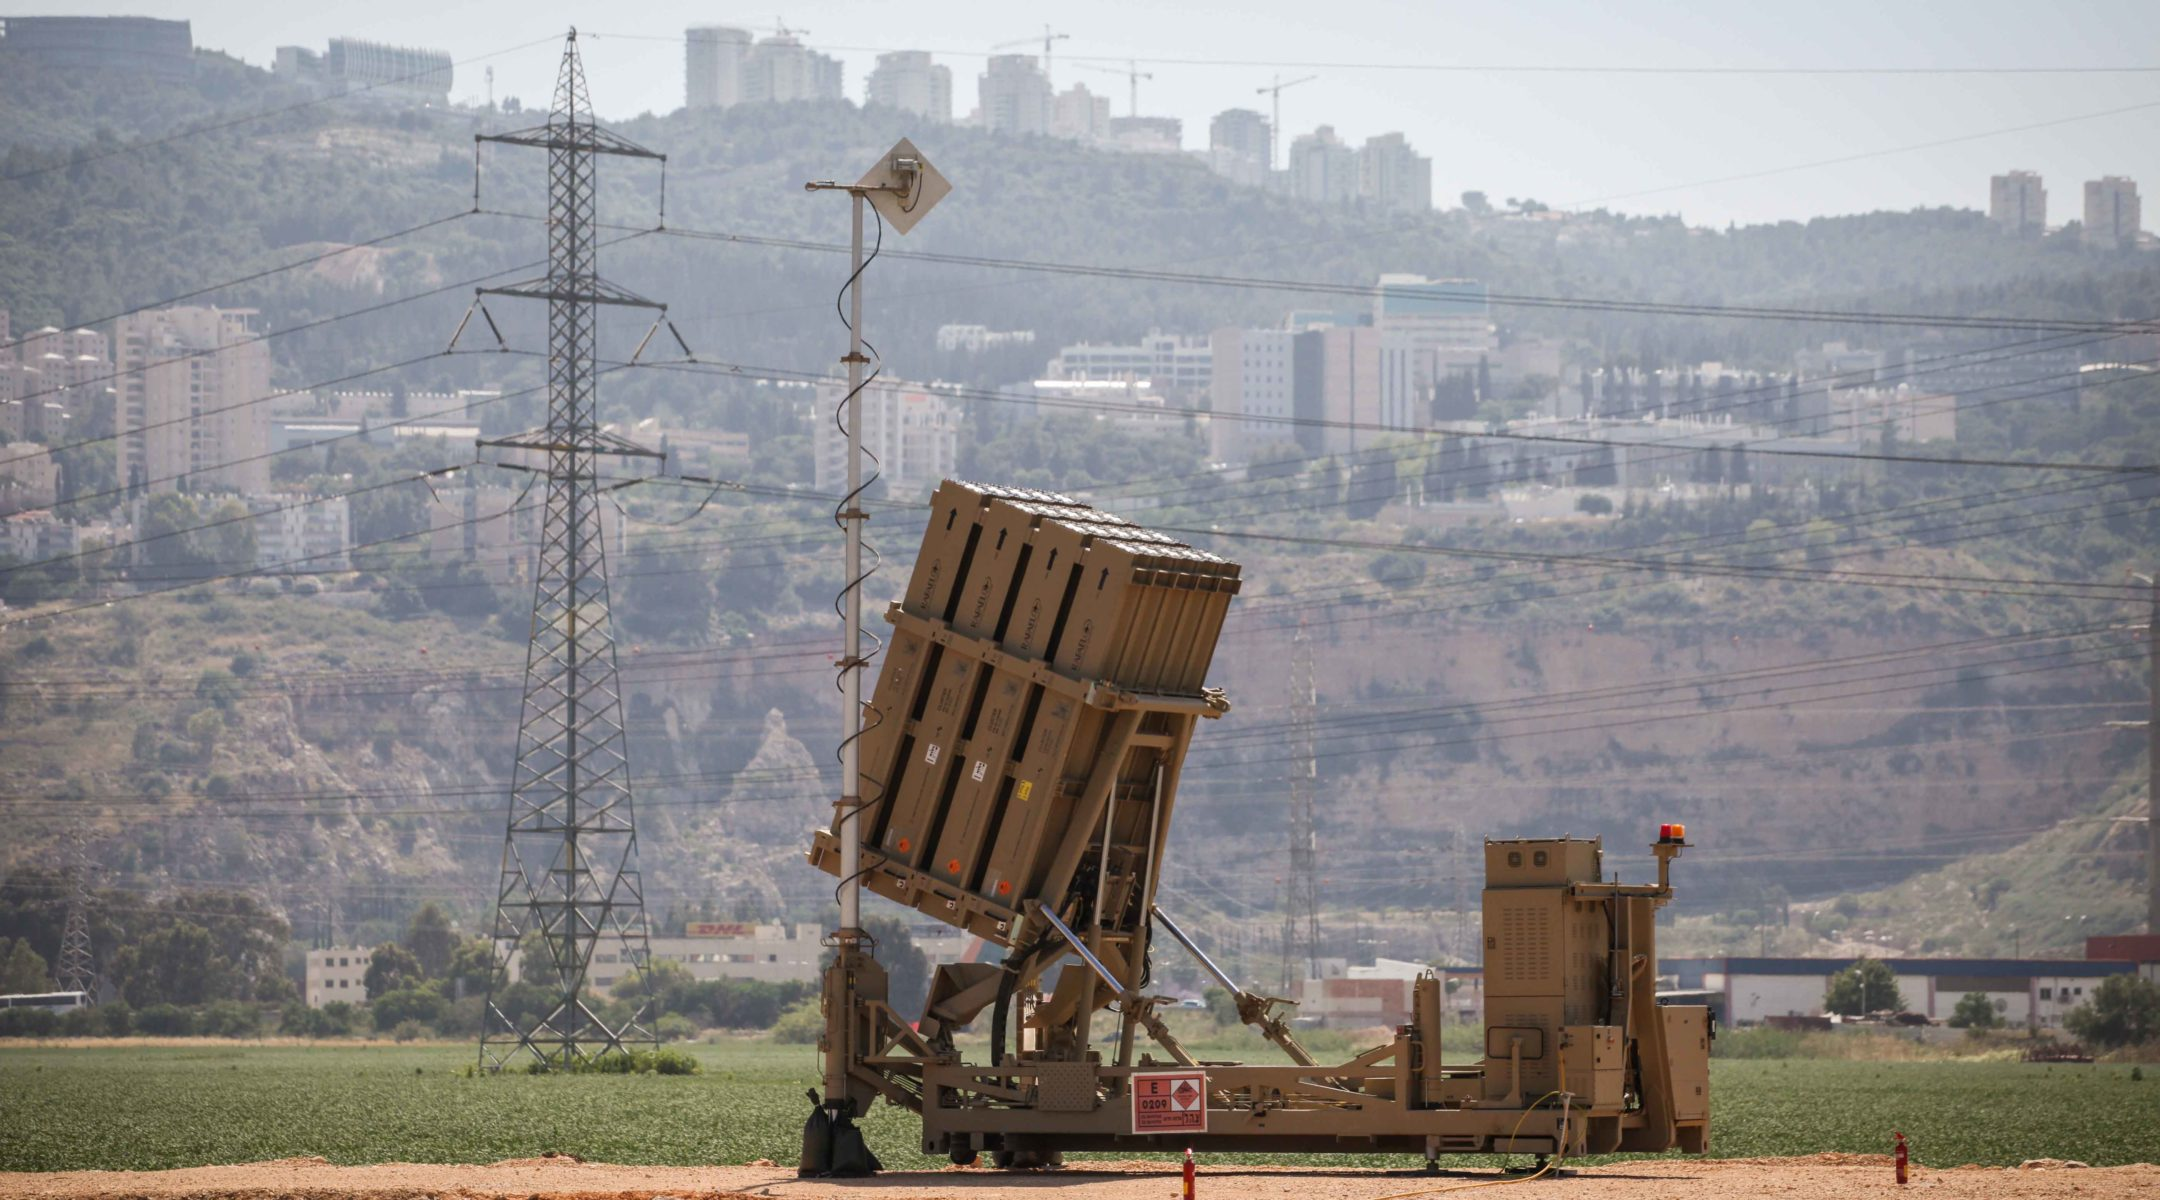 iron dome, israel attacks syria,